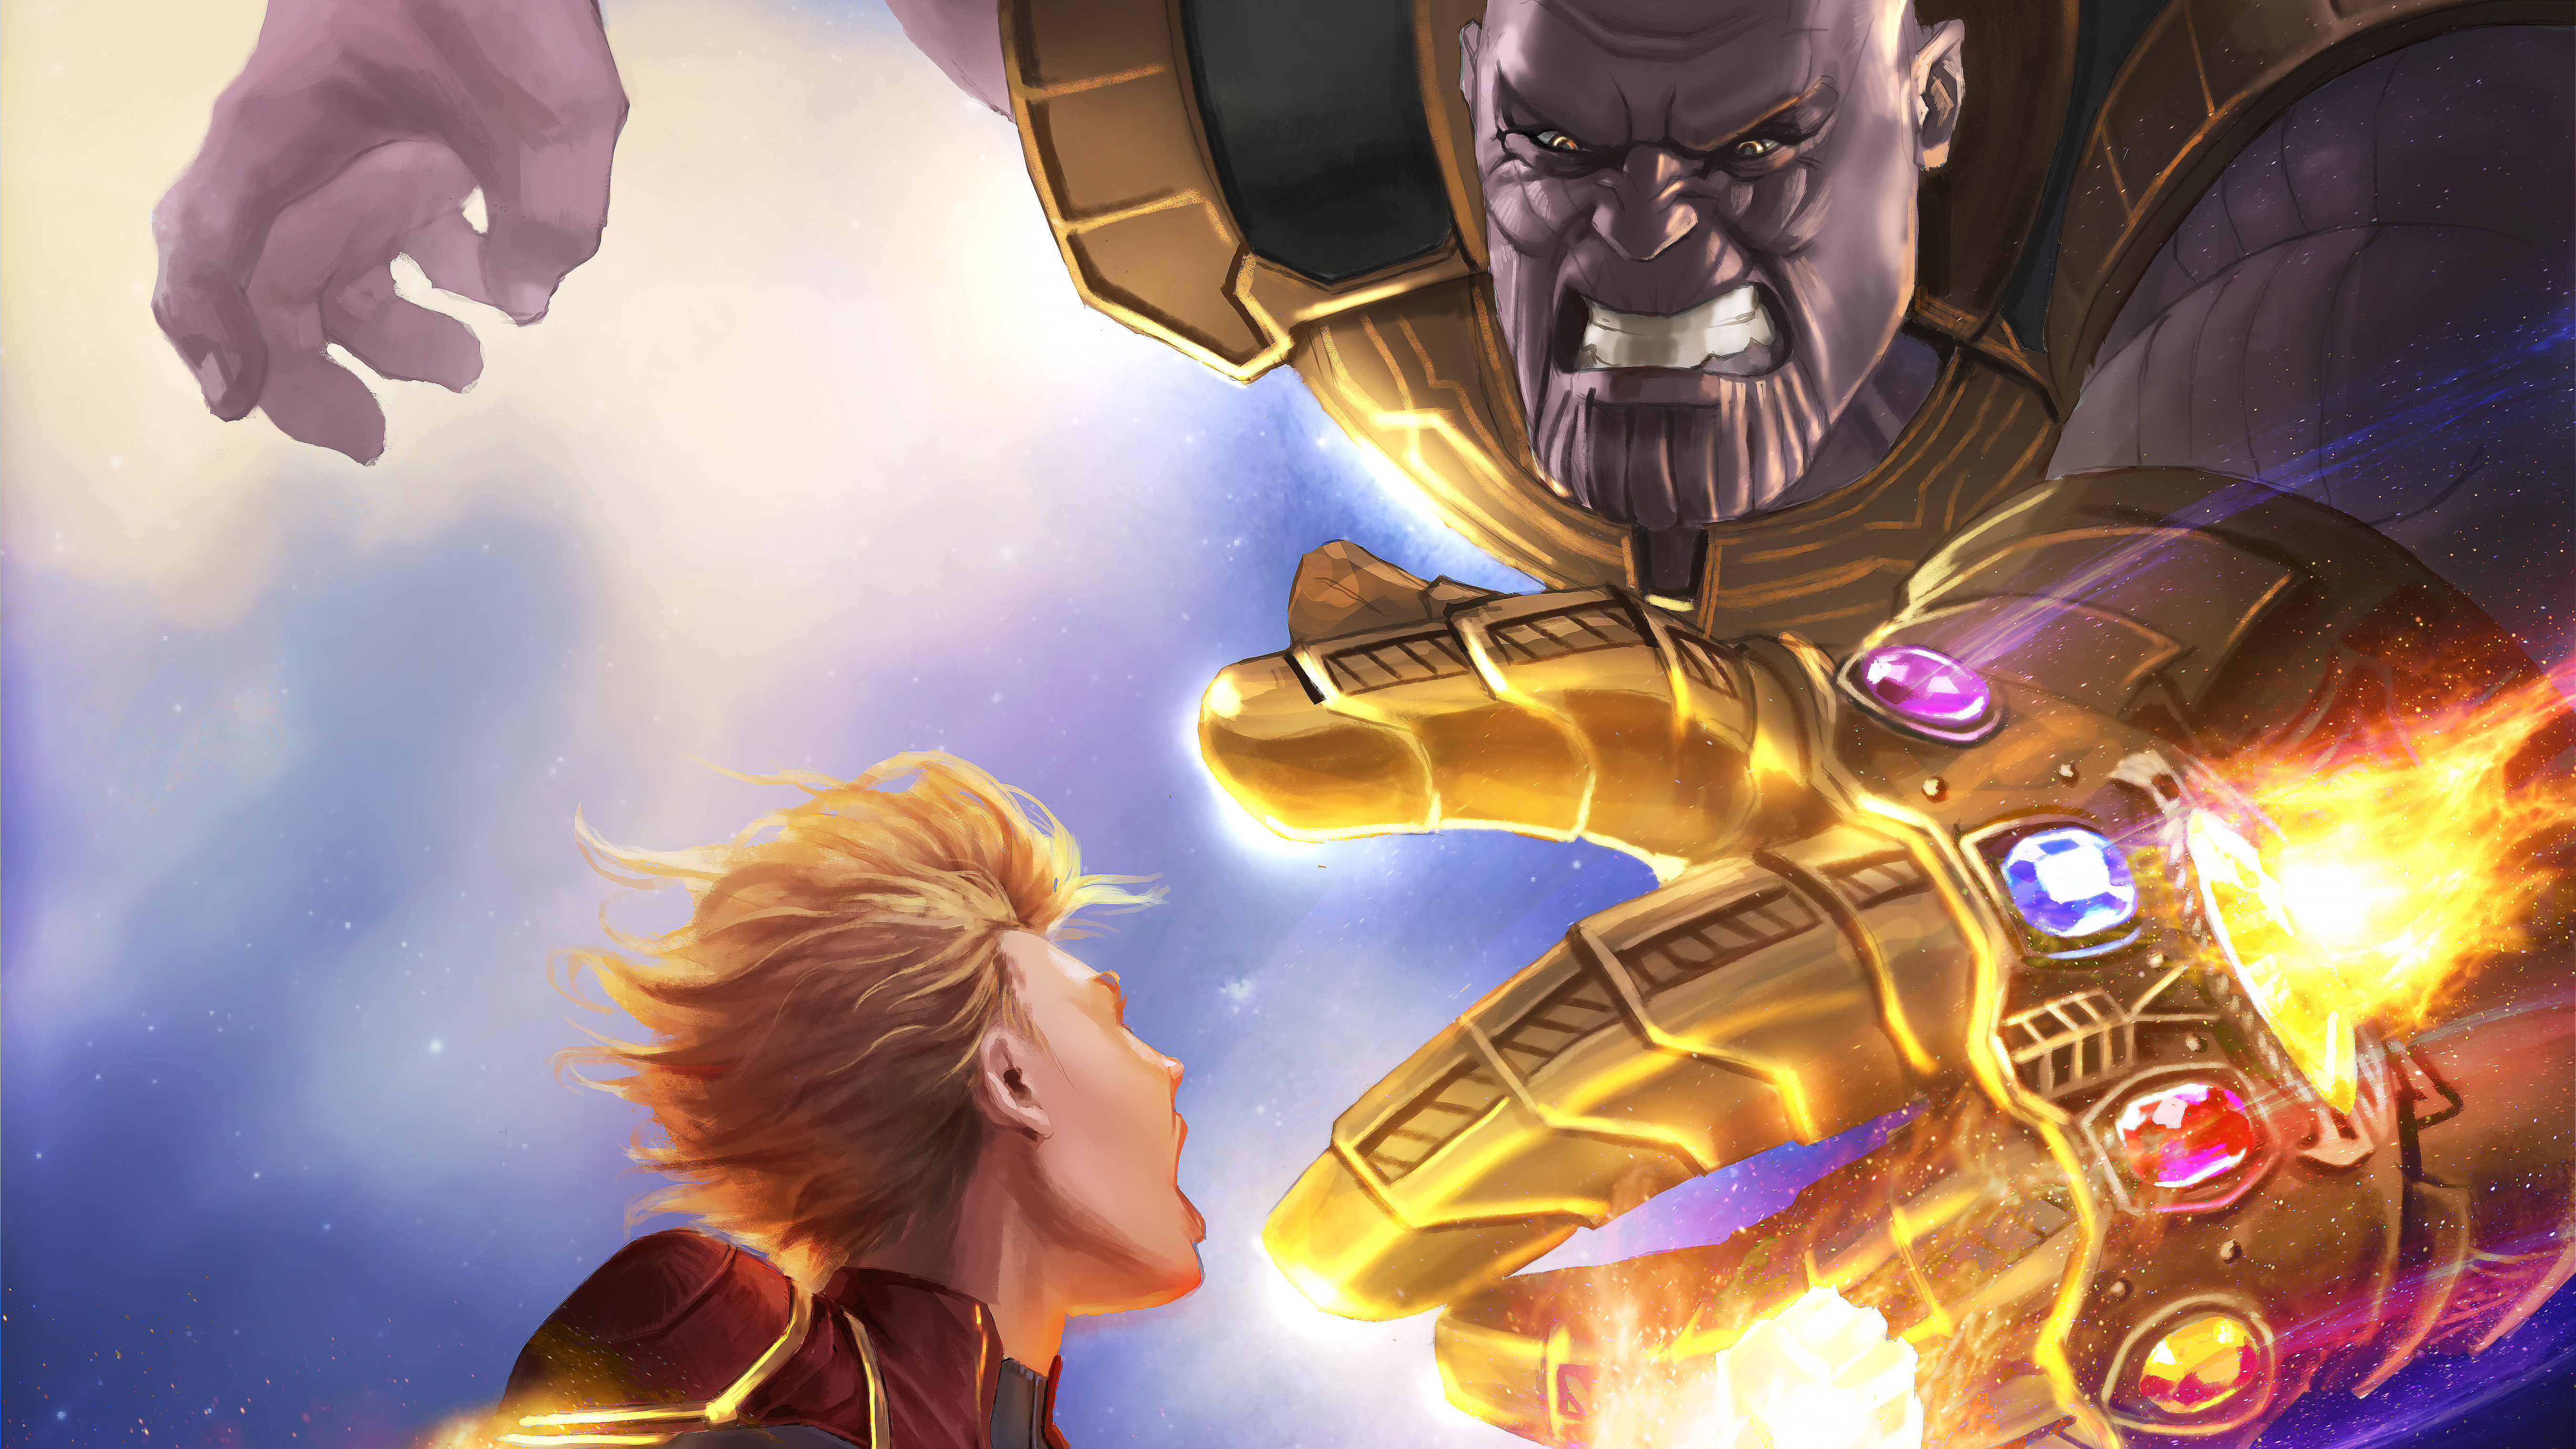 Thanos Hd Wallpaper: Captain Marvel Vs Thanos 5k Artwork, HD Superheroes, 4k